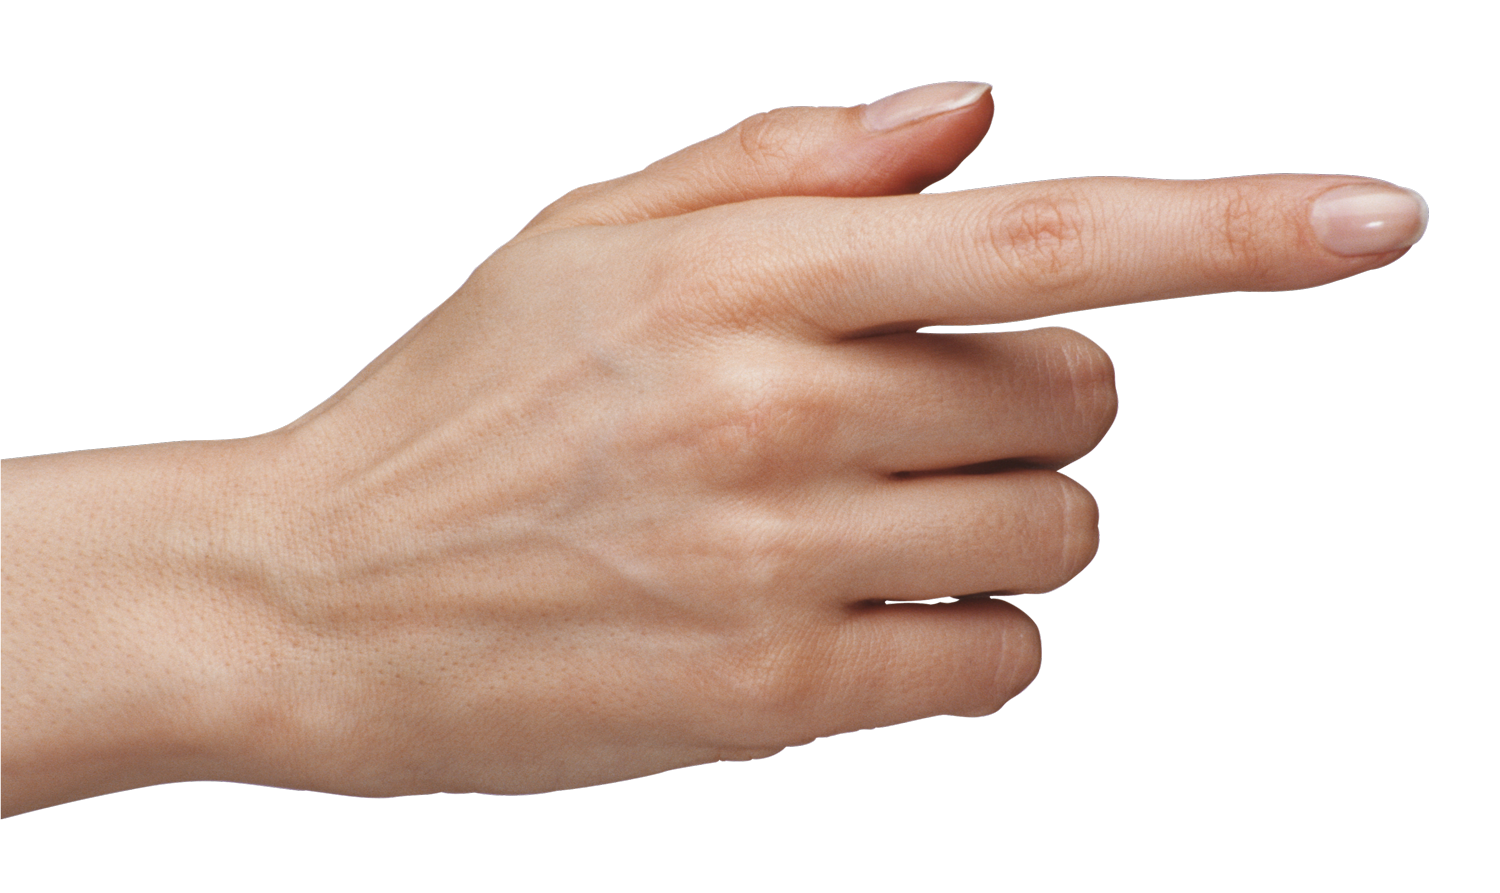 Hand png image transparent 9